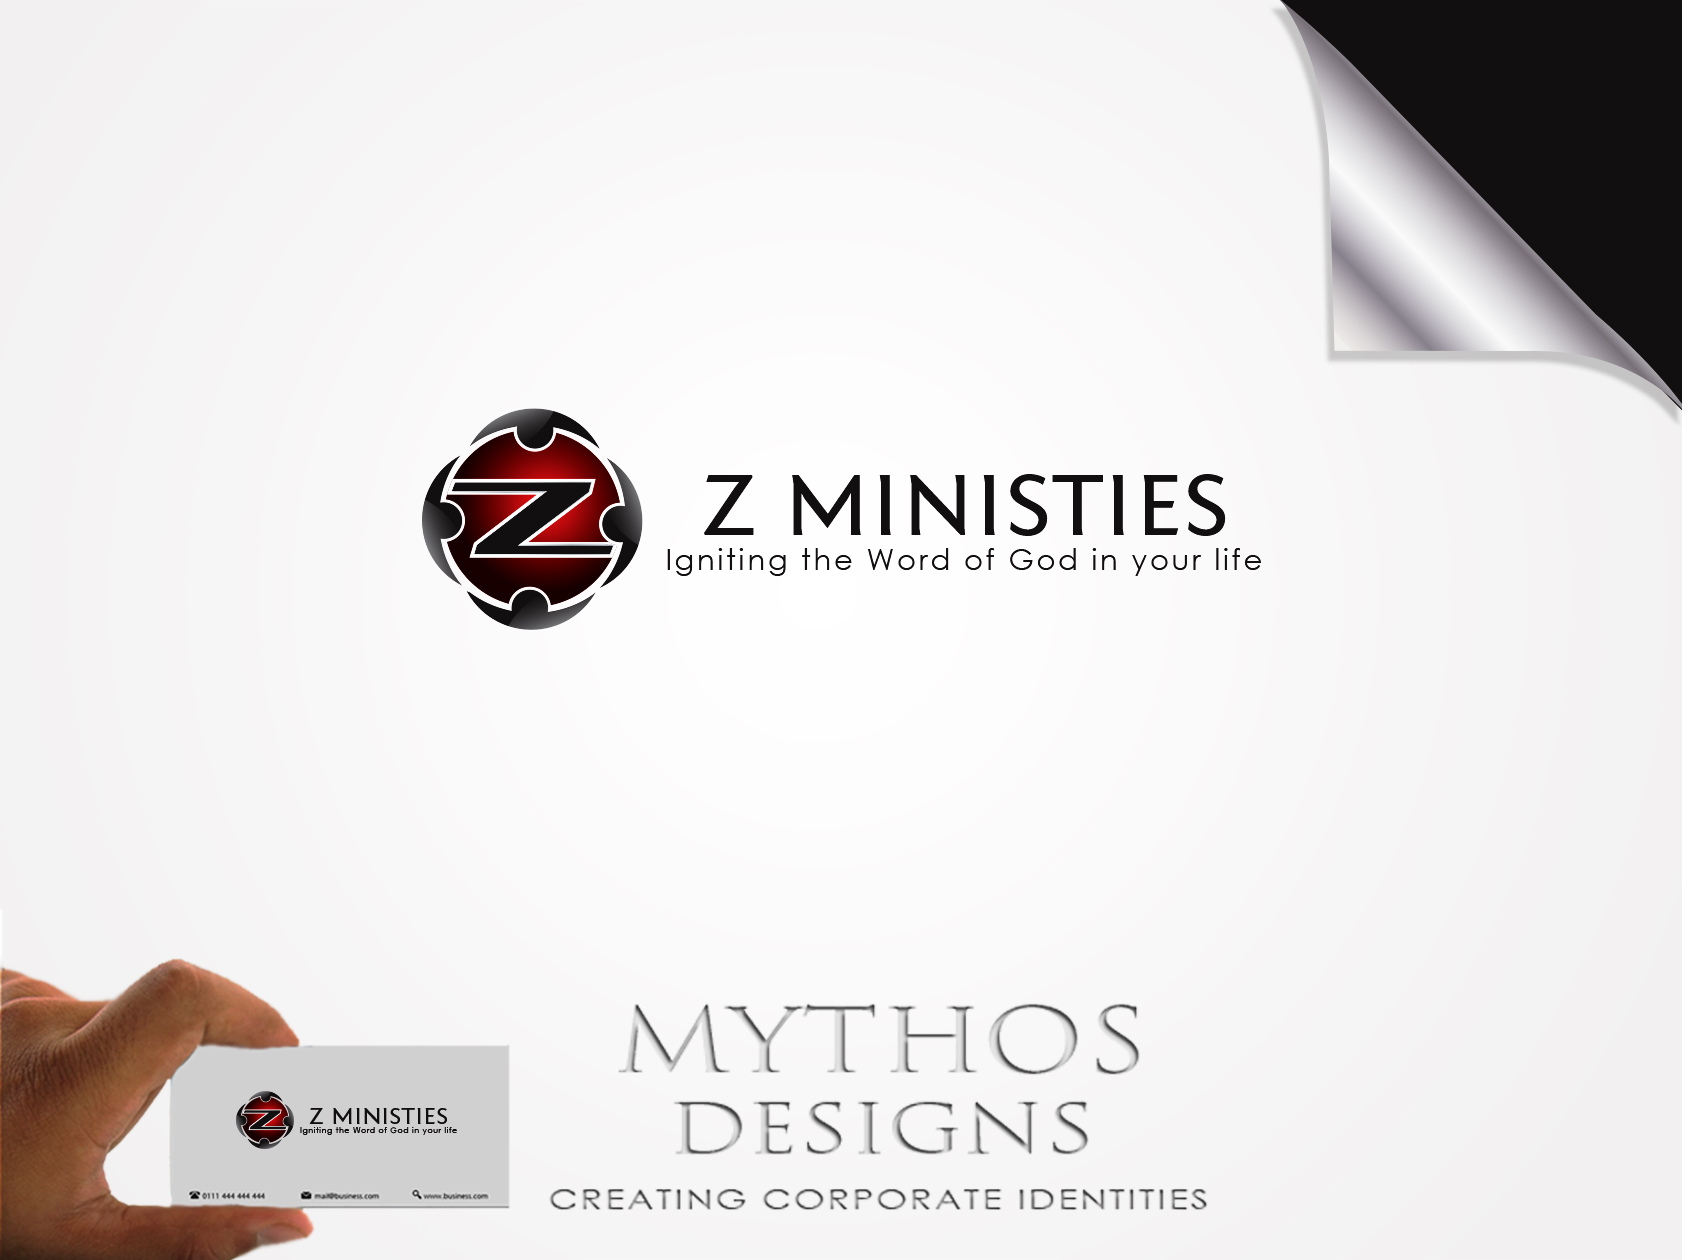 Logo Design by Mythos Designs - Entry No. 133 in the Logo Design Contest Artistic Logo Design for Z Ministries.